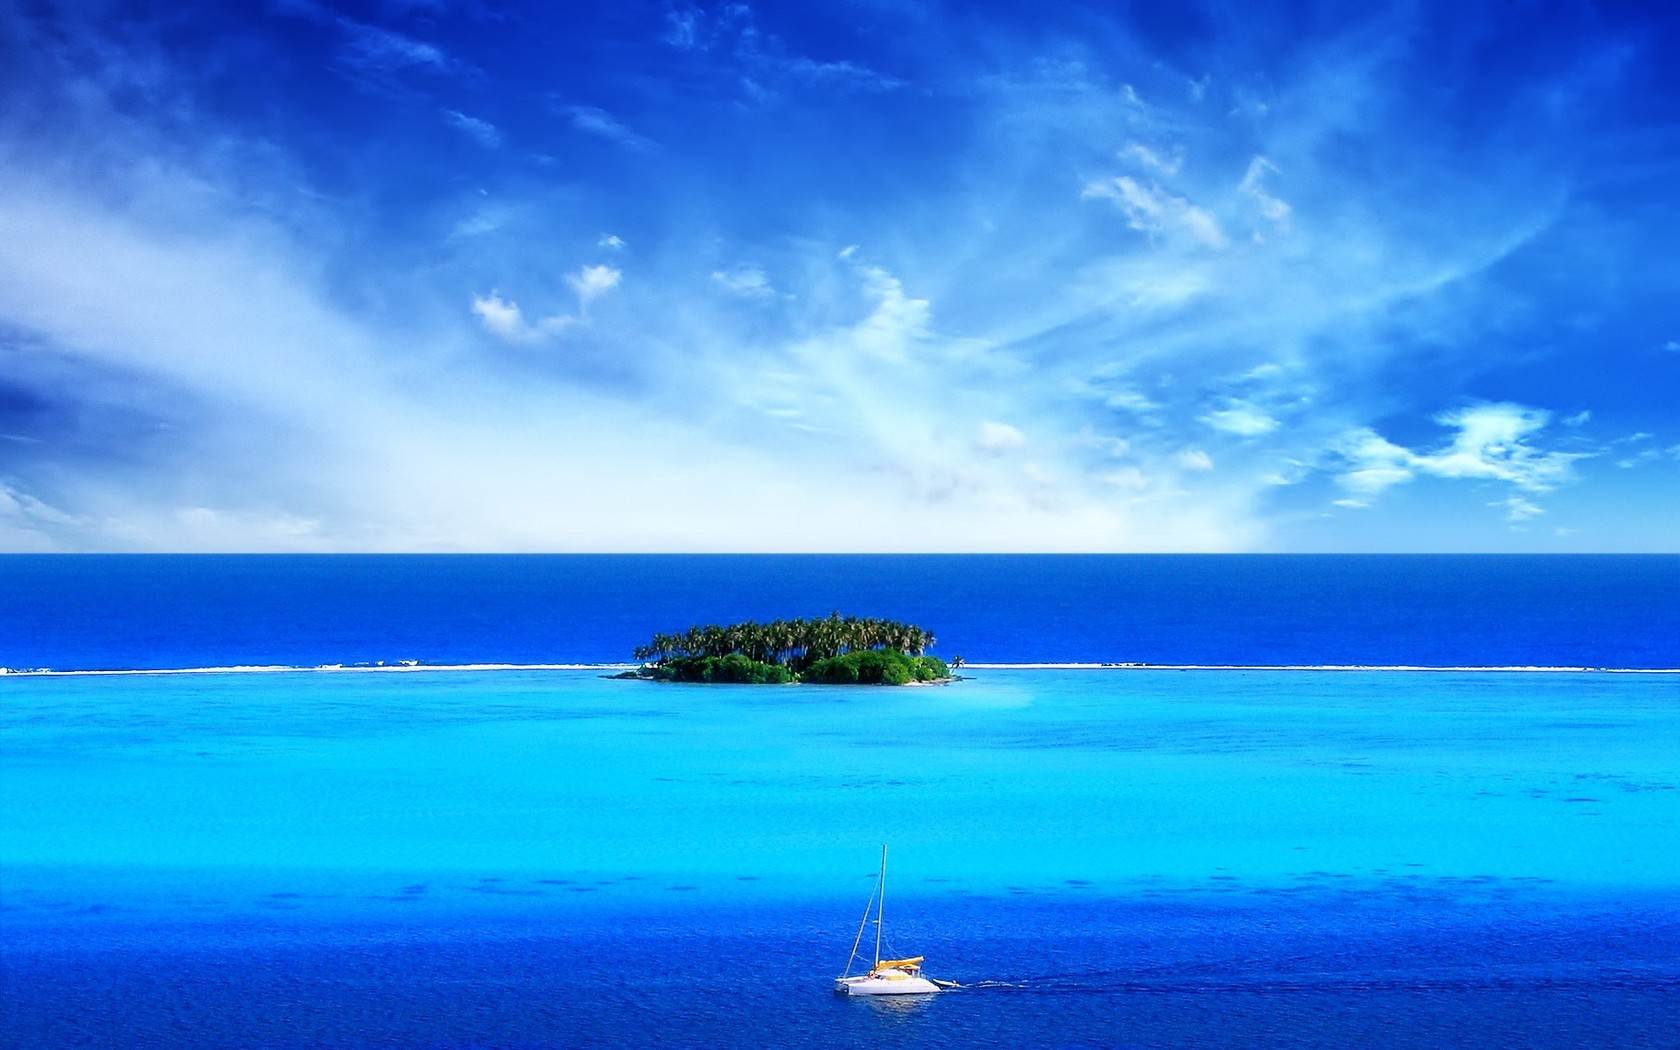 Download Sailing around the tropical island wallpaper 1680x1050